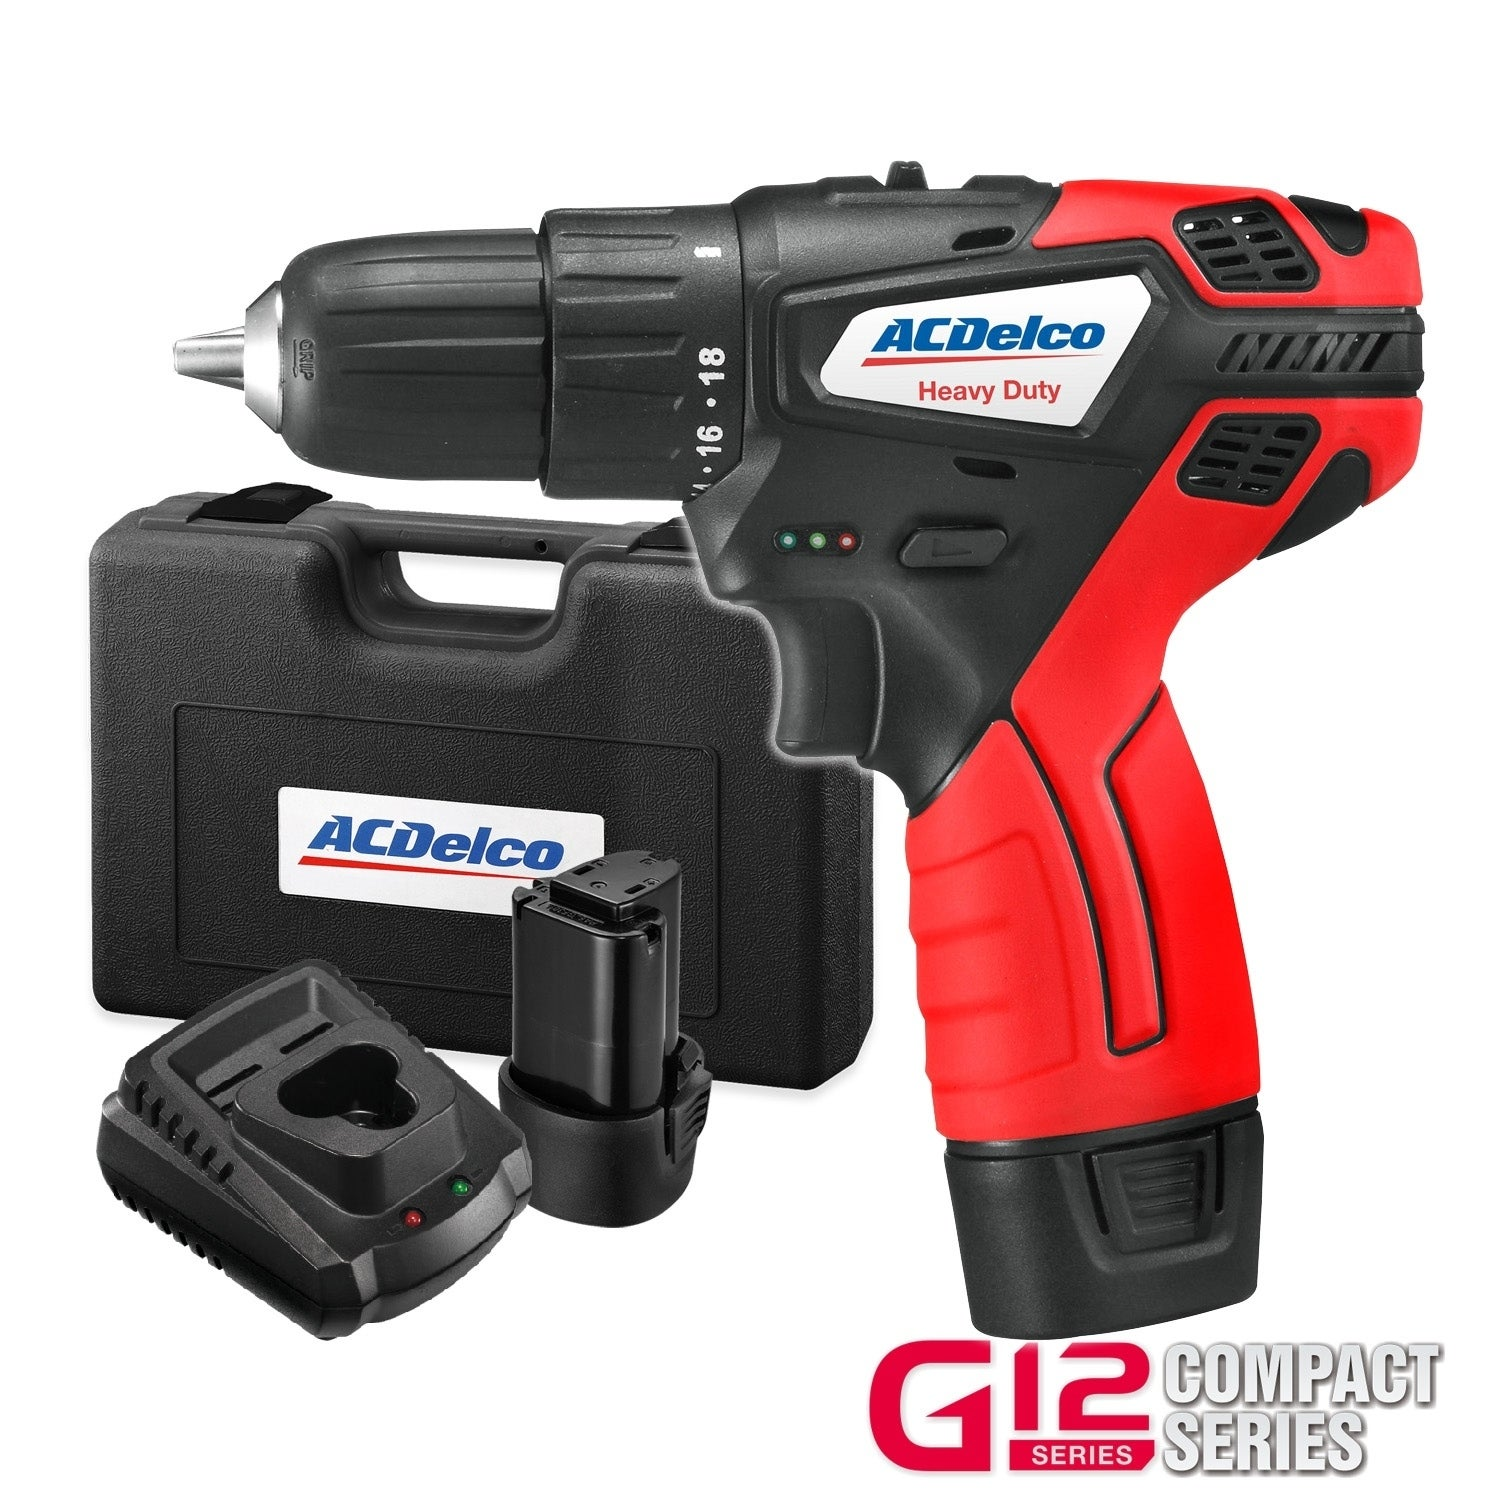 Charger ACDelco G12 Series 12V Cordless 3 Mini Polisher Tool Set with 2 Li-ion Batteries and Accessory Kit ARS1212